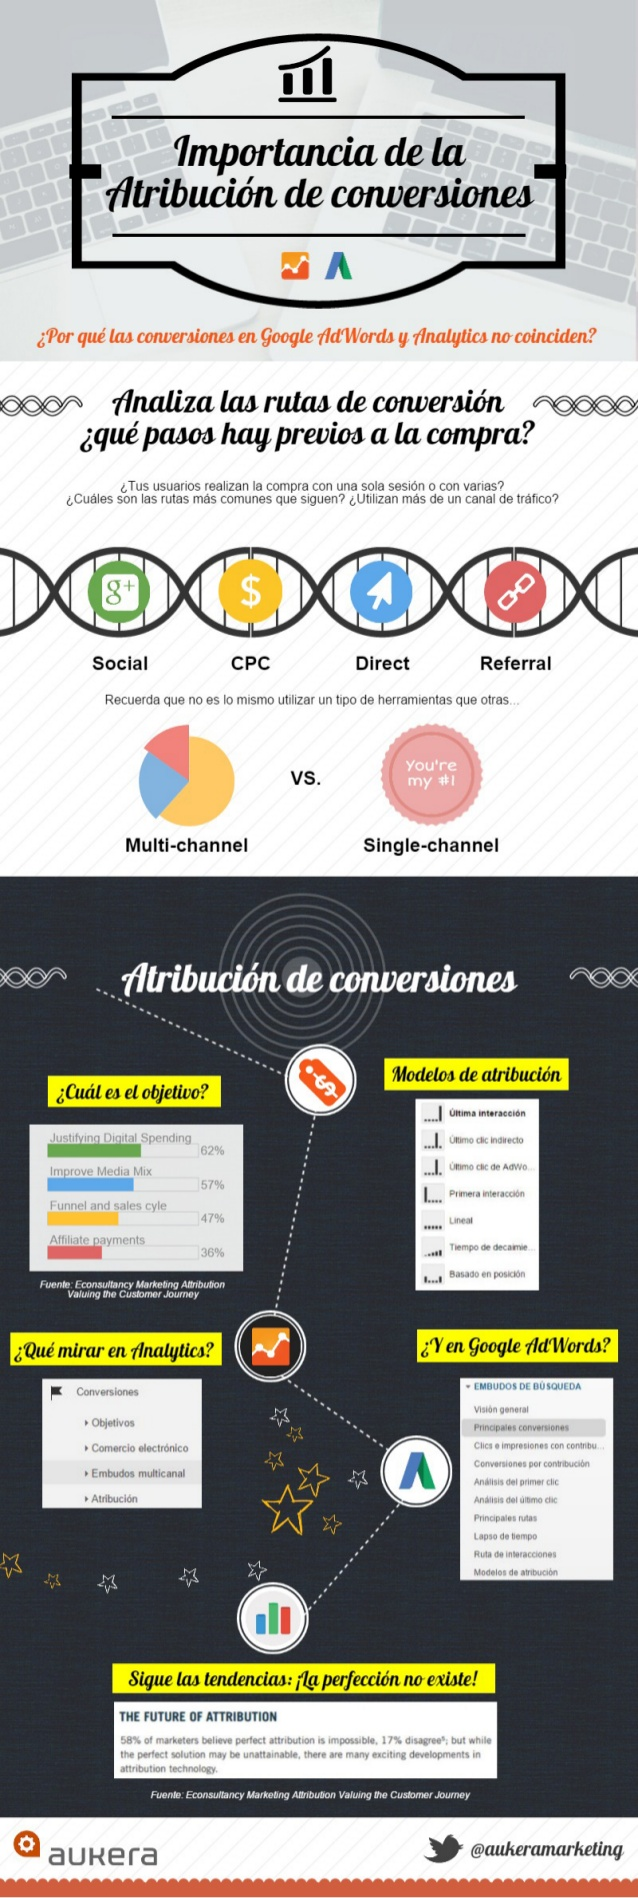 La importancia de la Atribución de conversiones (Adwords vs Analytics)